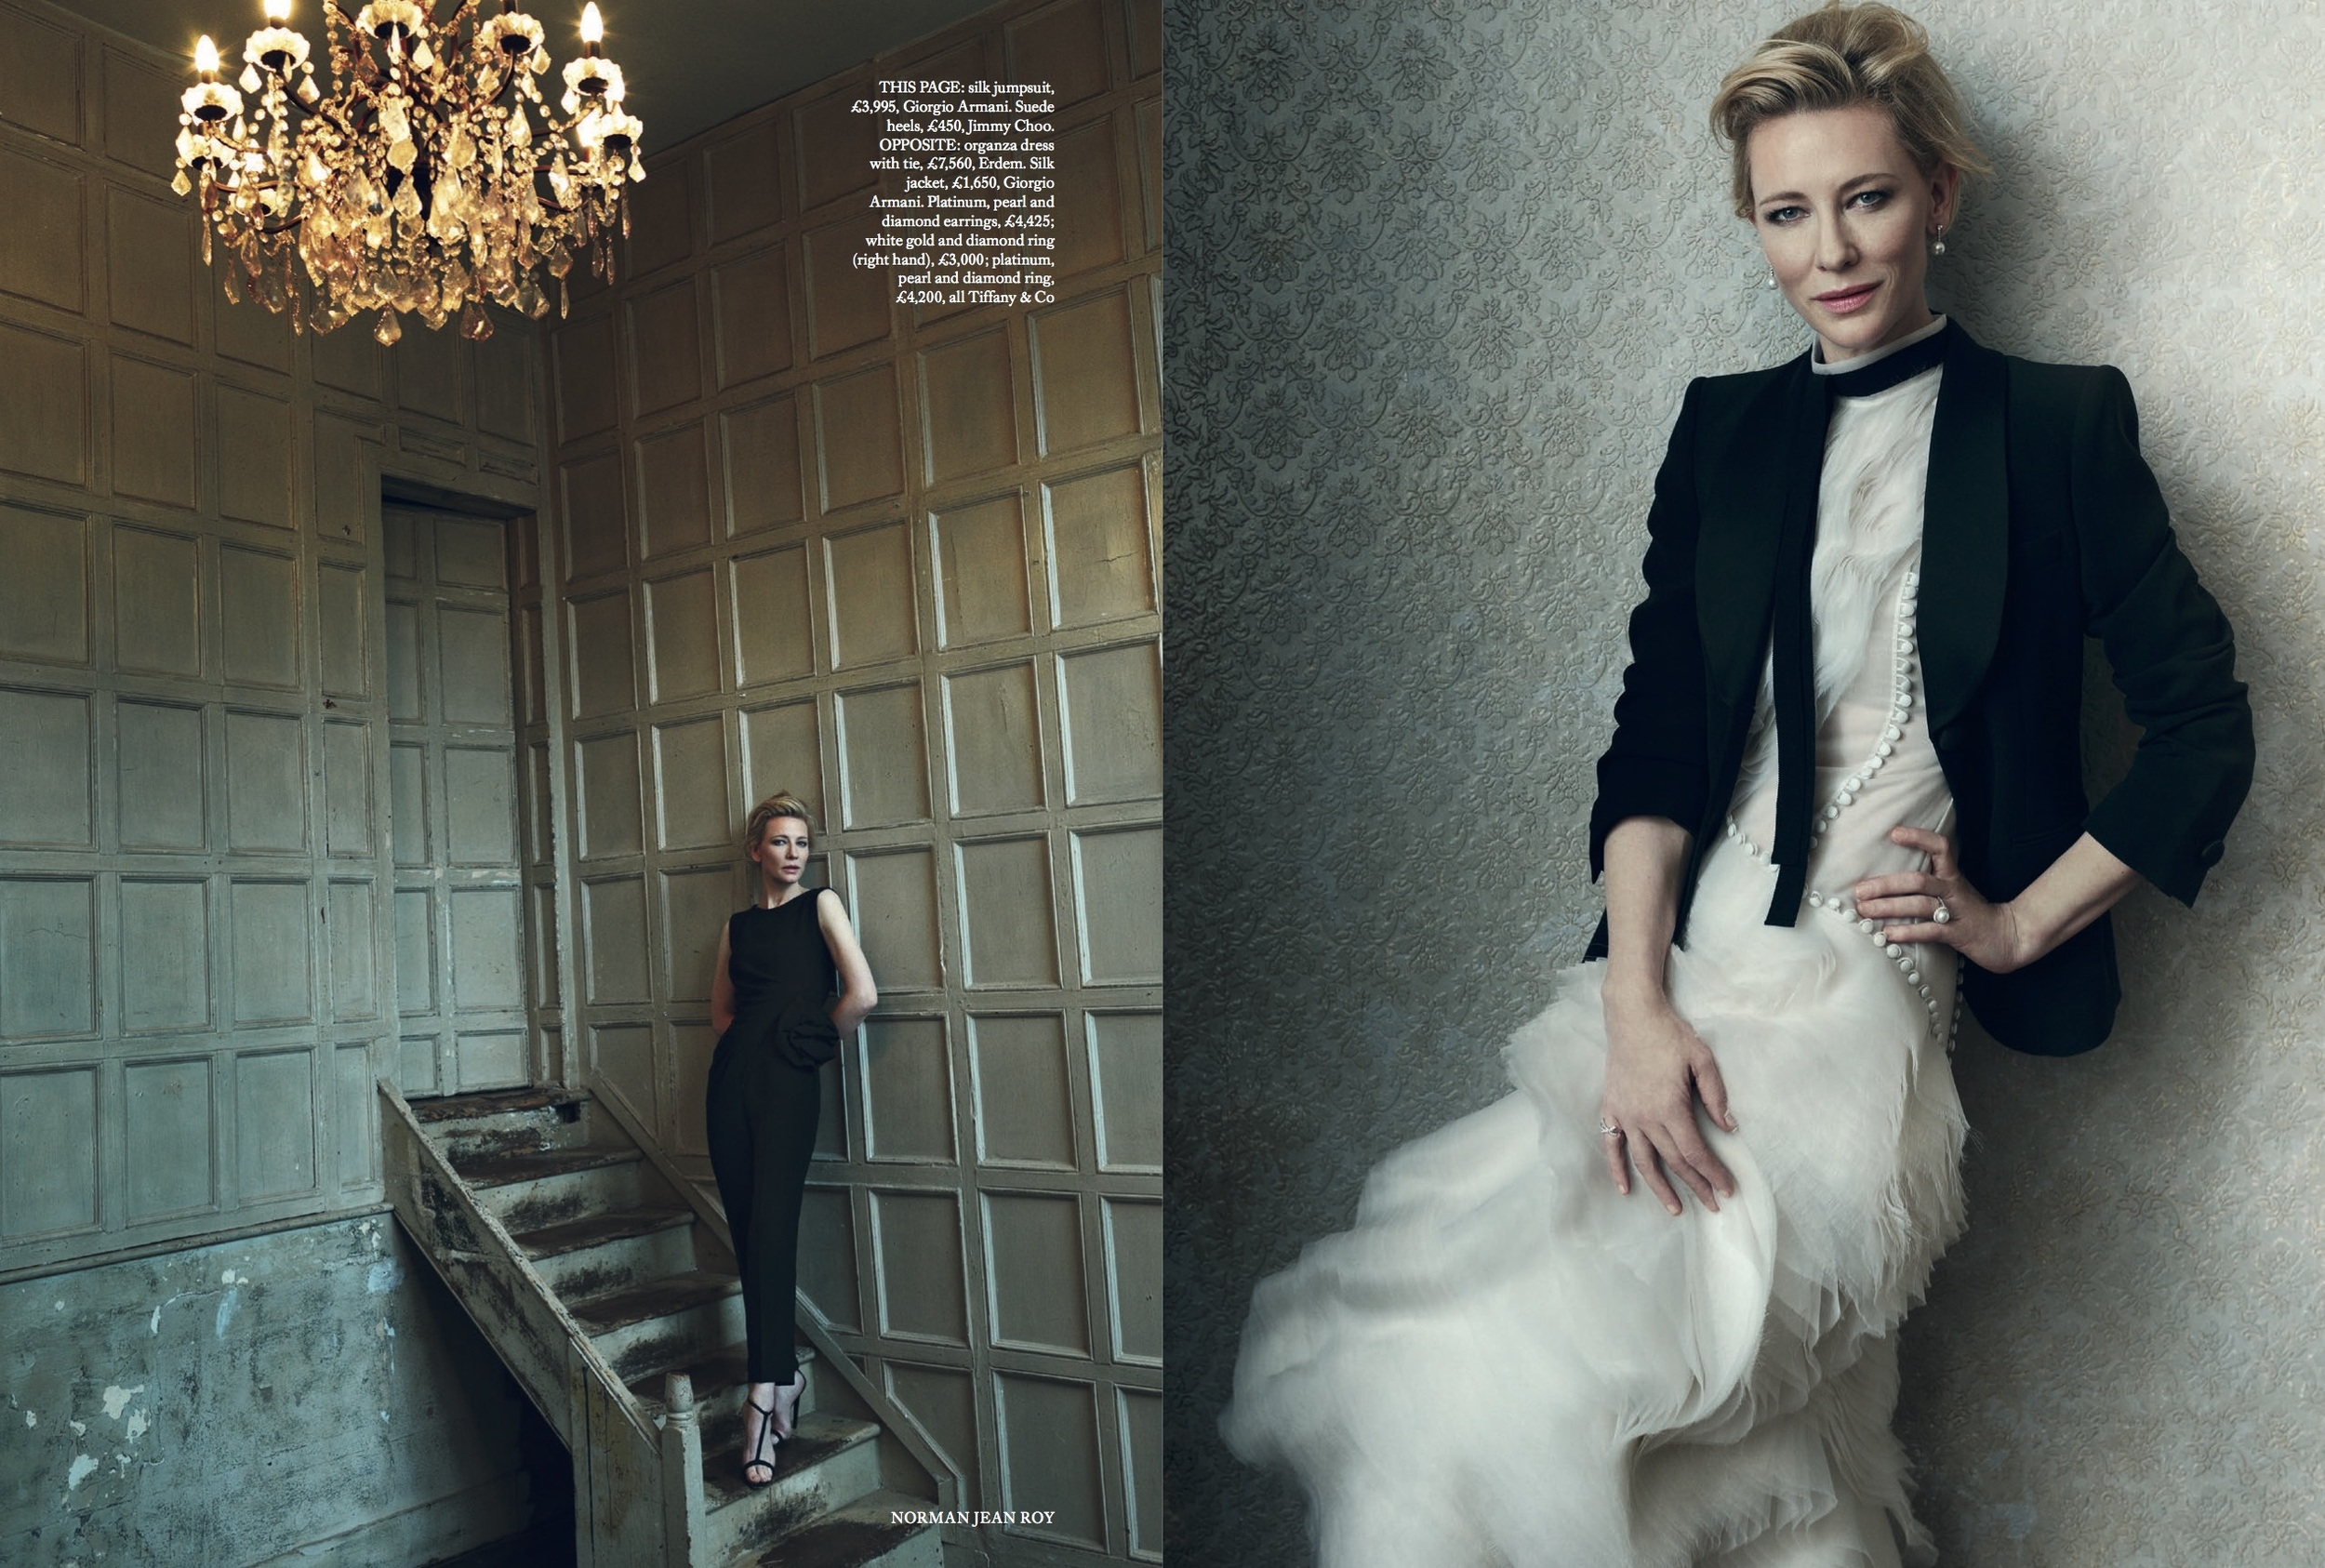 Cate Blanchett Cover Story for Harper's Bazaar, styled by Charlie Harrington. Spread 3.